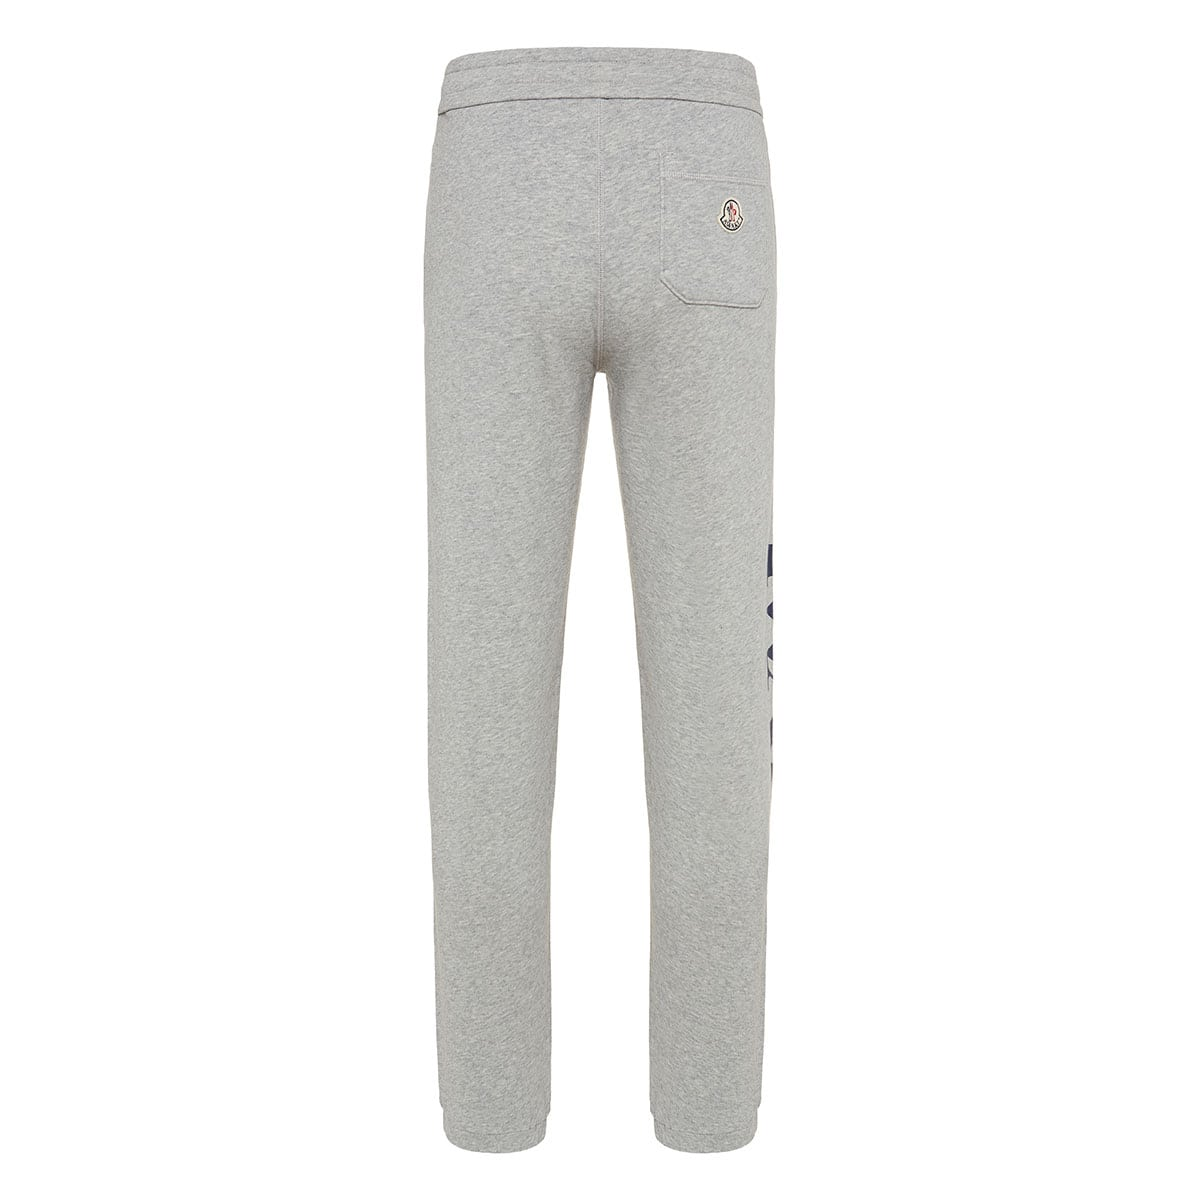 2 Moncler 1952 logo track trousers